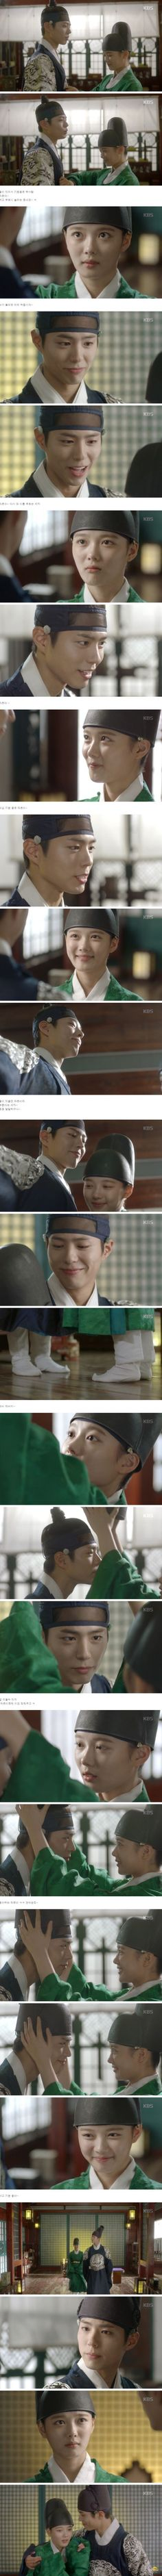 Added episode 10 captures for the Korean drama 'Moonlight Drawn by Clouds'.